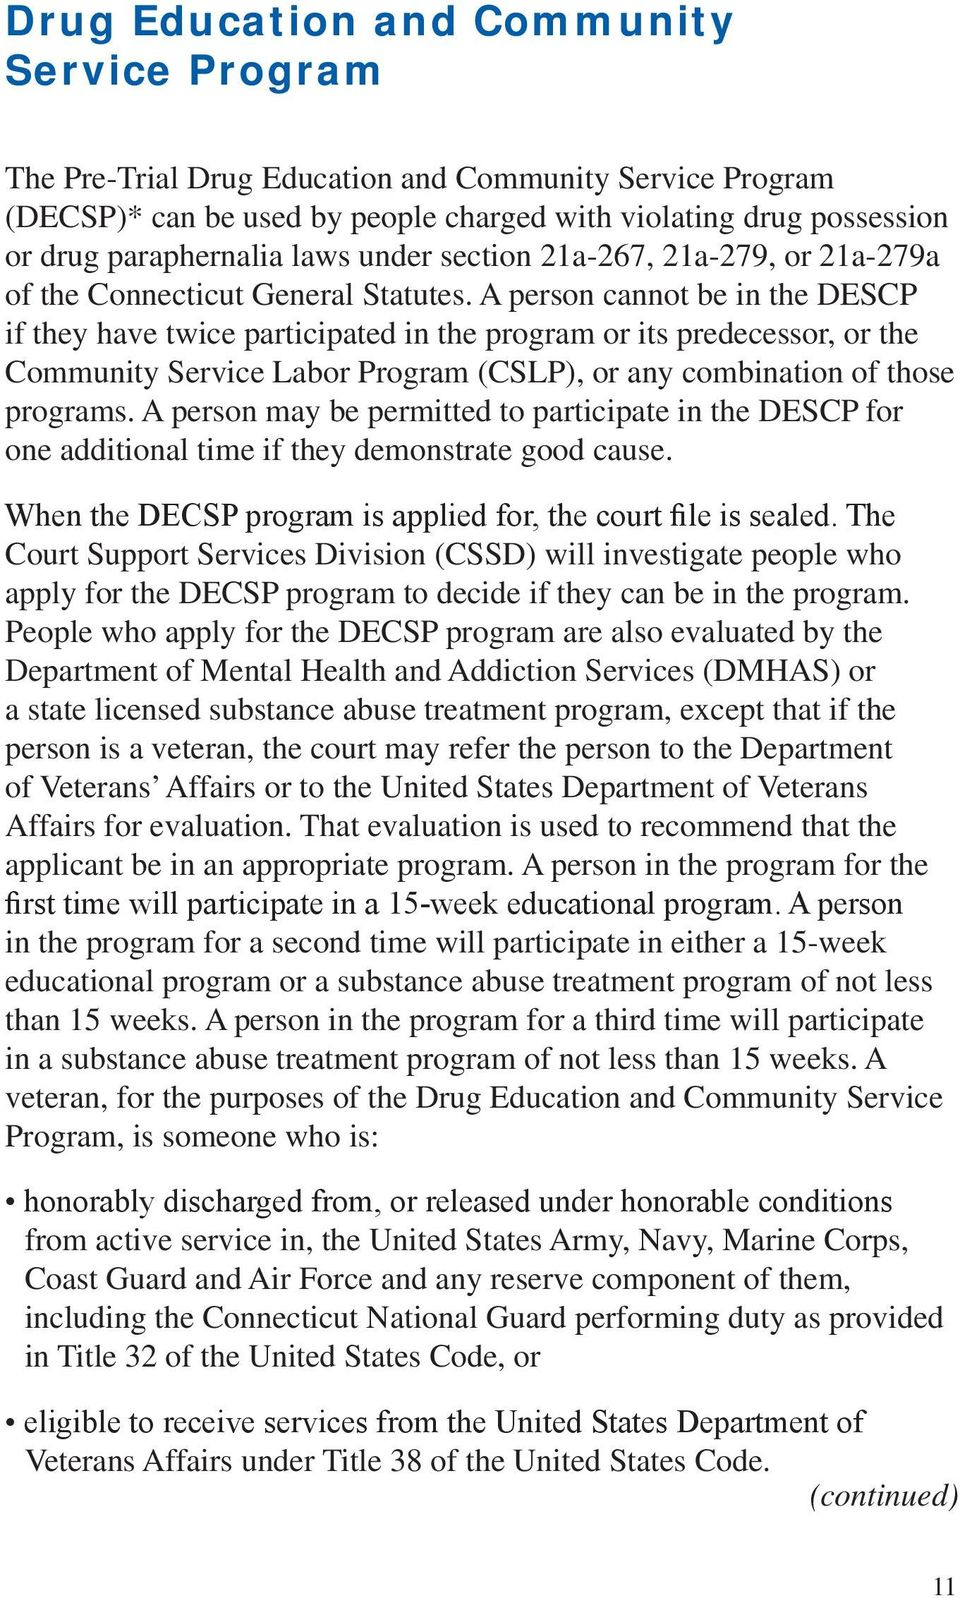 A person cannot be in the DESCP if they have twice participated in the program or its predecessor, or the Community Service Labor Program (CSLP), or any combination of those programs.